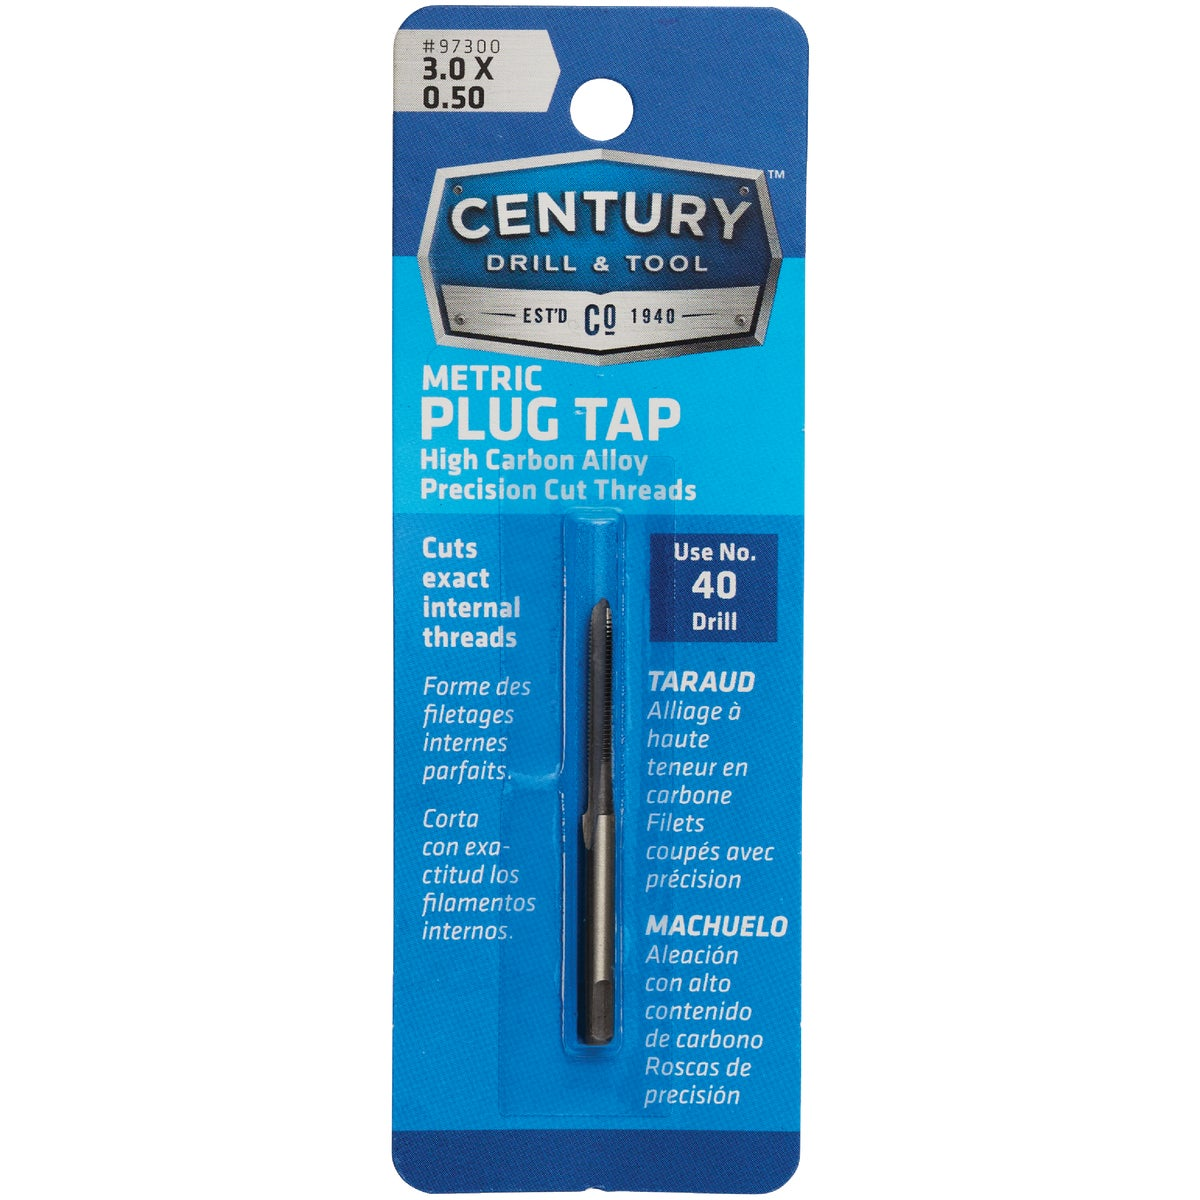 3MM-.50 TAP - 8312 by Irwin Industr Tool